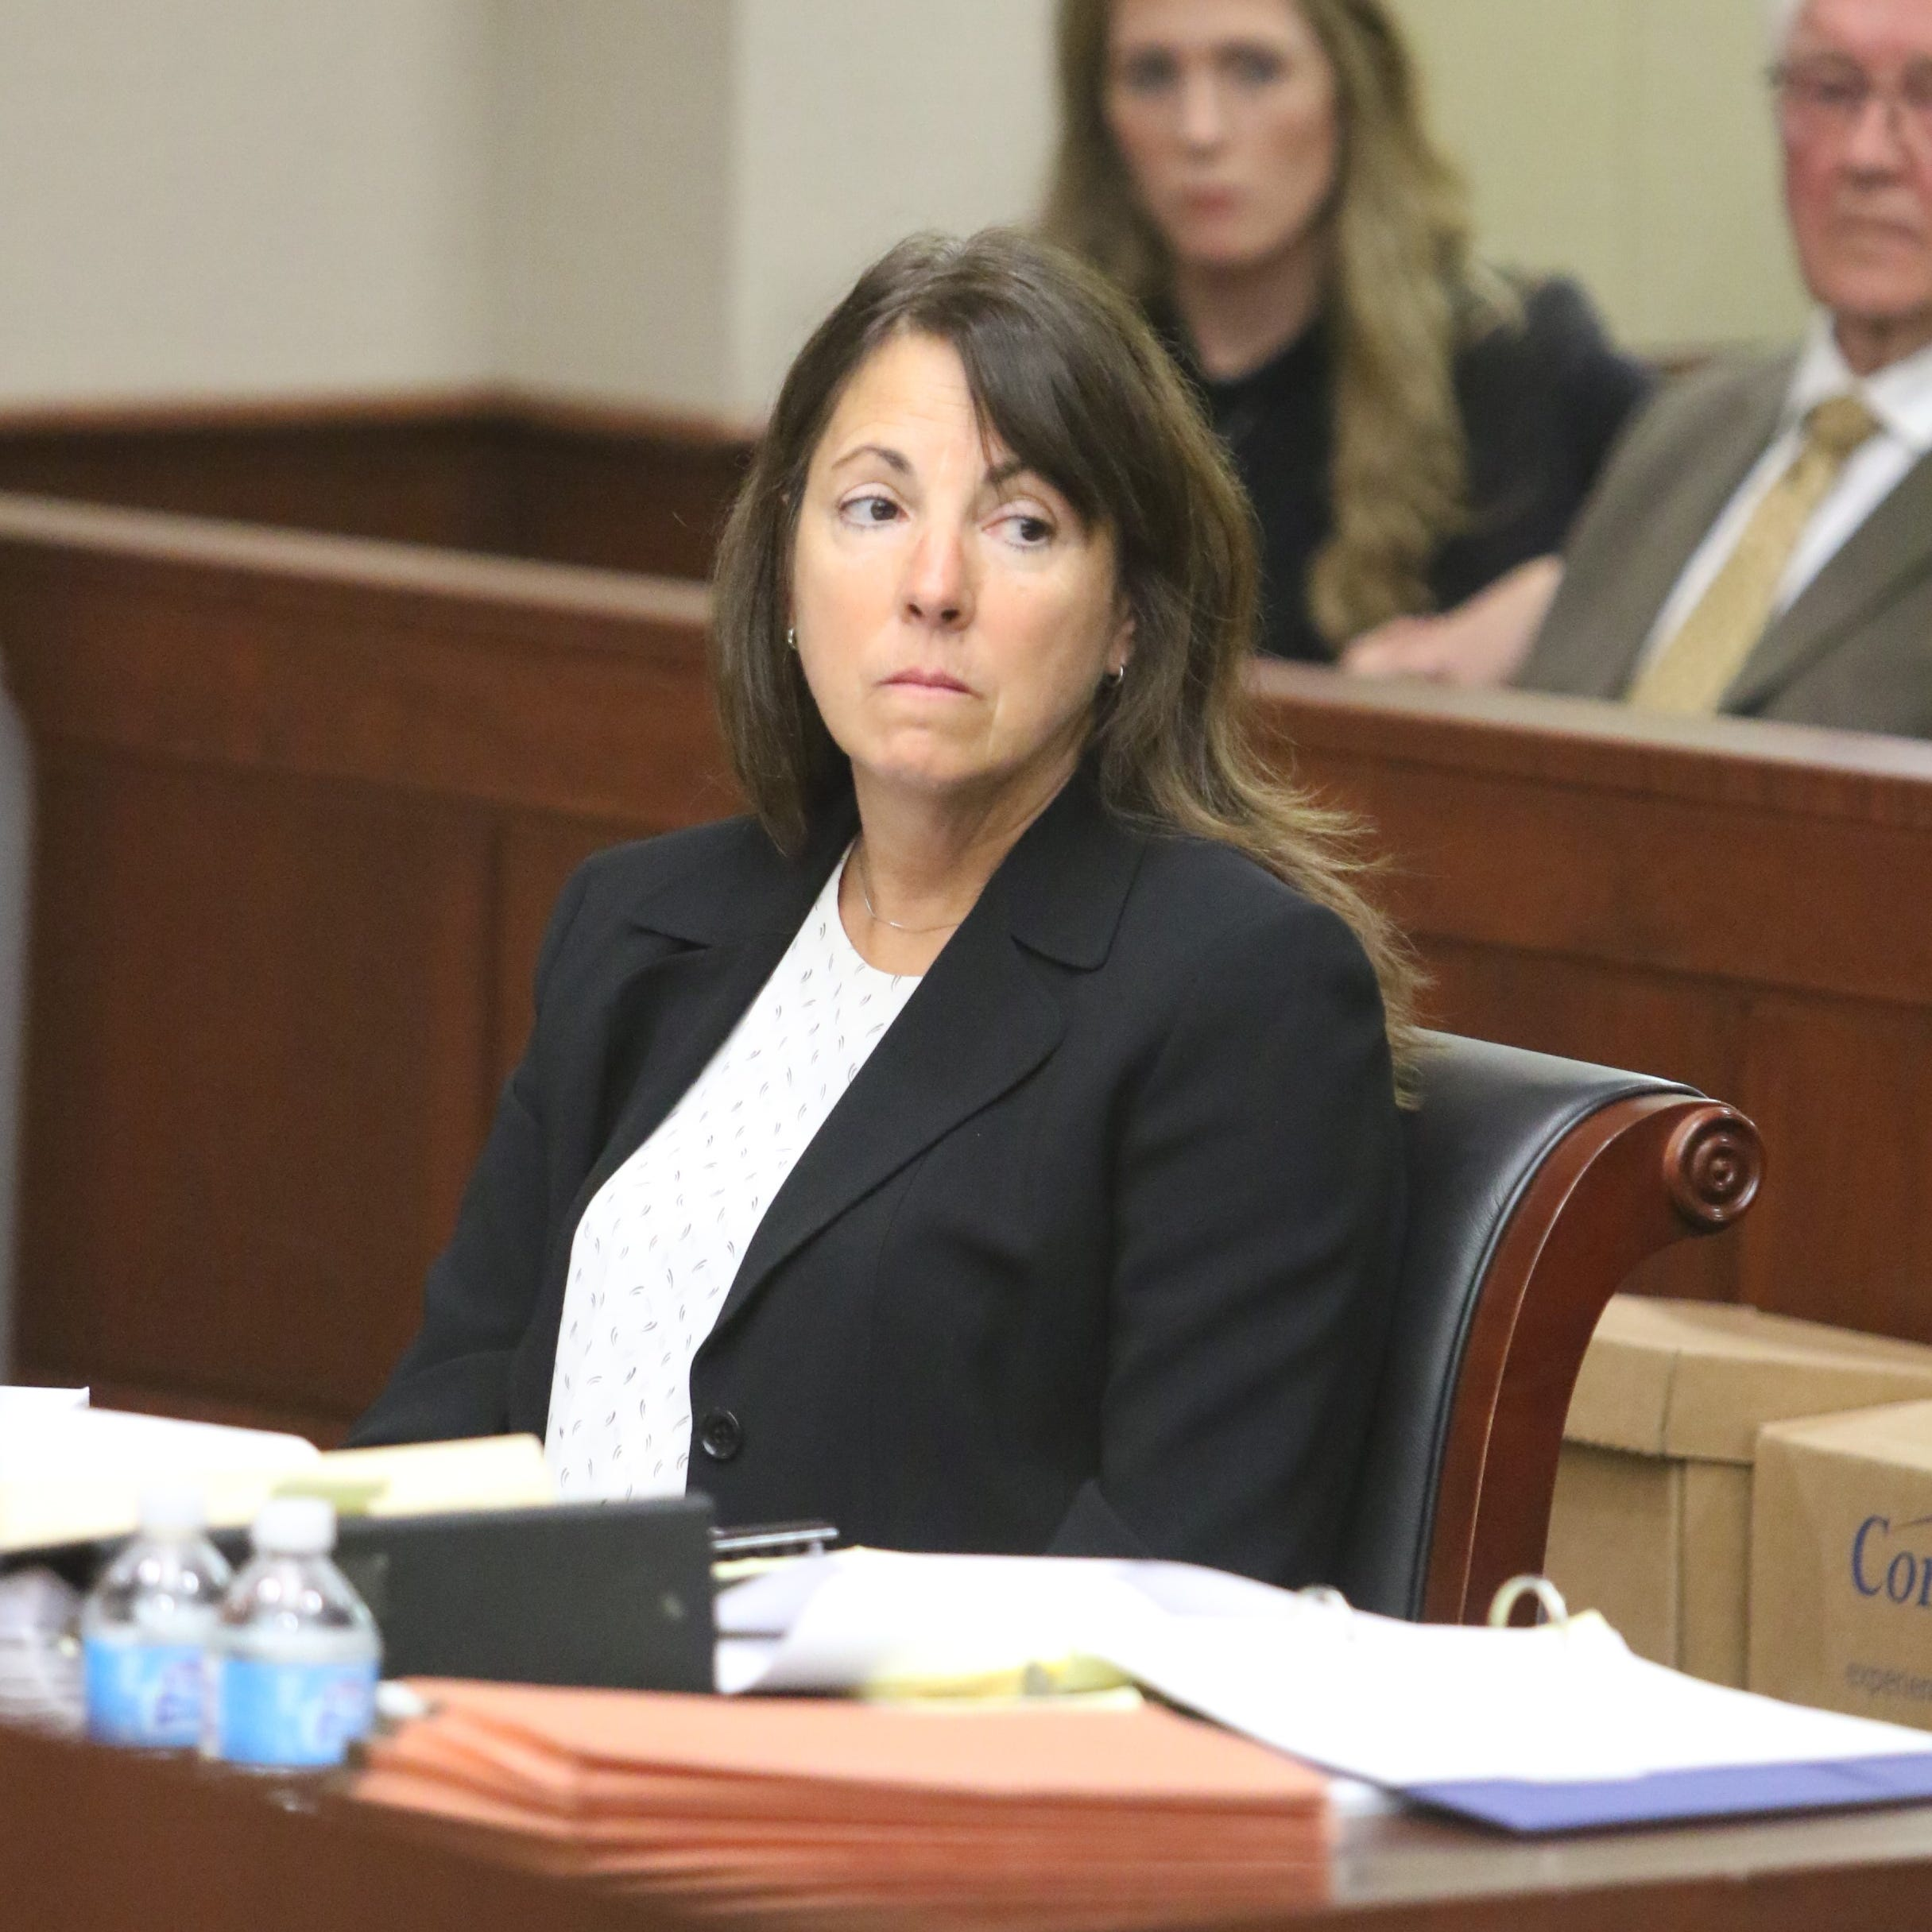 Judicial Tenure Commission adds three counts to Brennan misconduct complaint